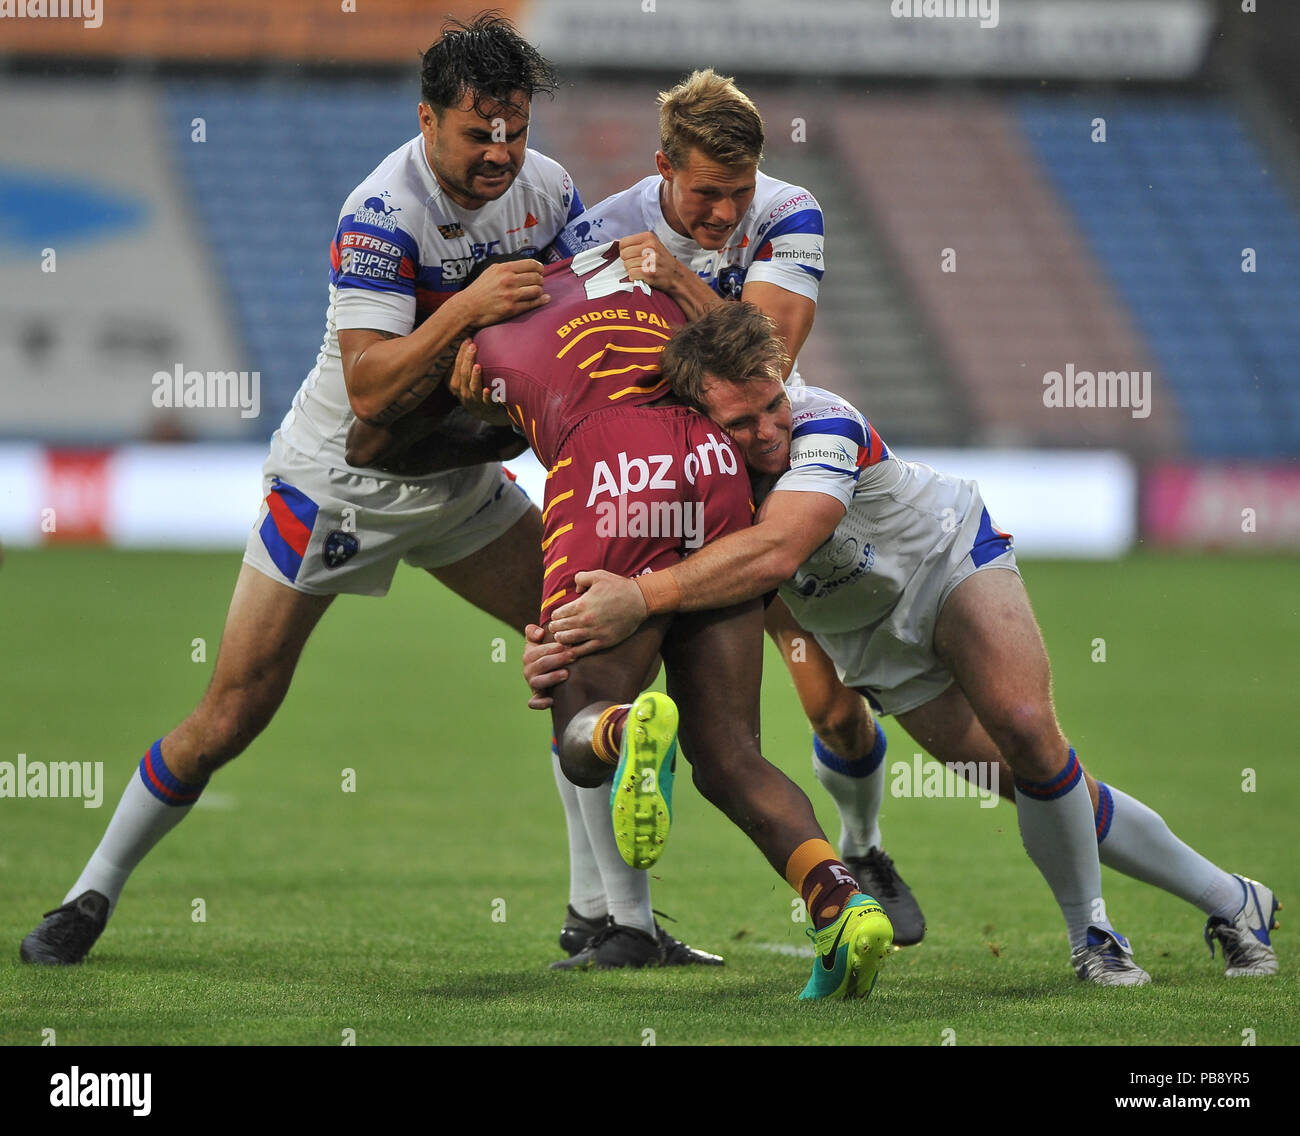 Wakefield, UK. 27th July 2018. John Smiths Stadium, Huddersfield, UK. 27th July, 2018. Betfred Super League Rugby League between Huddersfield Giants and Wakefield Trinity; Huddersfield Giants' Jermaine McGillvary is stopped by Justin Horo, Jacob Miller and Matty Ashurst.  Dean Williams Credit: Dean Williams/Alamy Live News - Stock Image